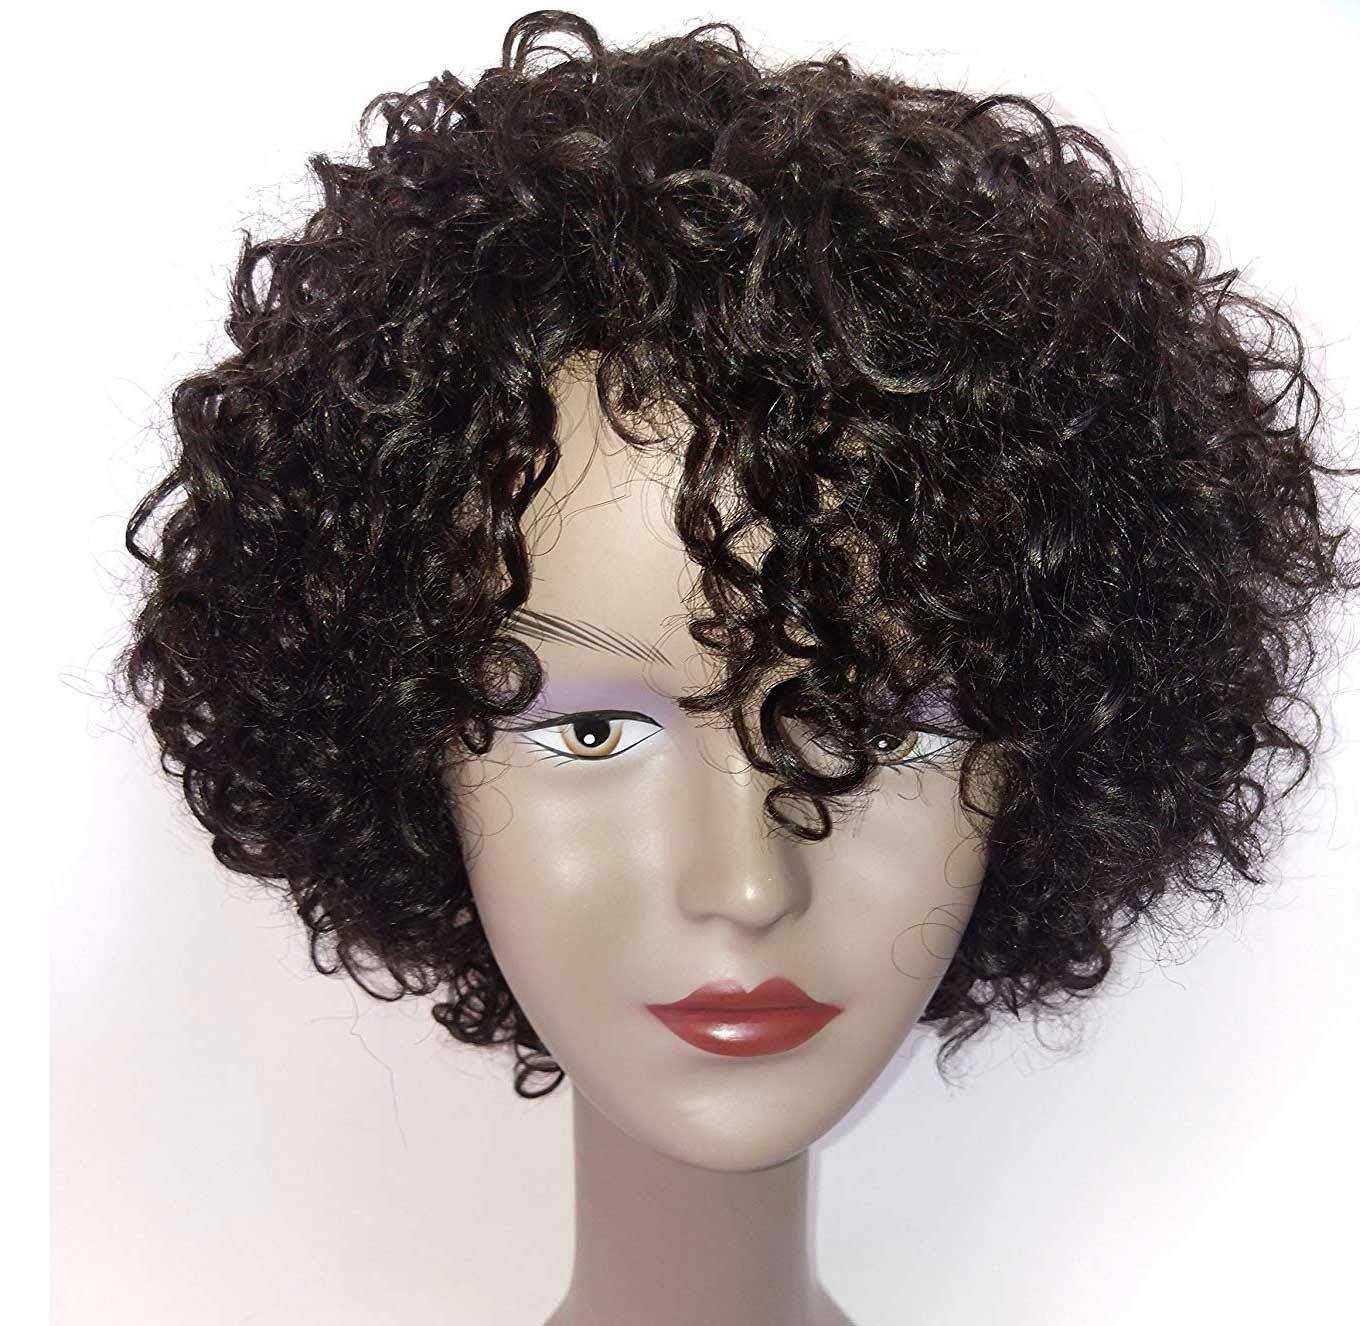 Brazilian Wigs 10 inch Short Deep Curly Human Hair Wigs For Black Women Short Bob Wigs No Lace Front Natural Color Side Part by HUA